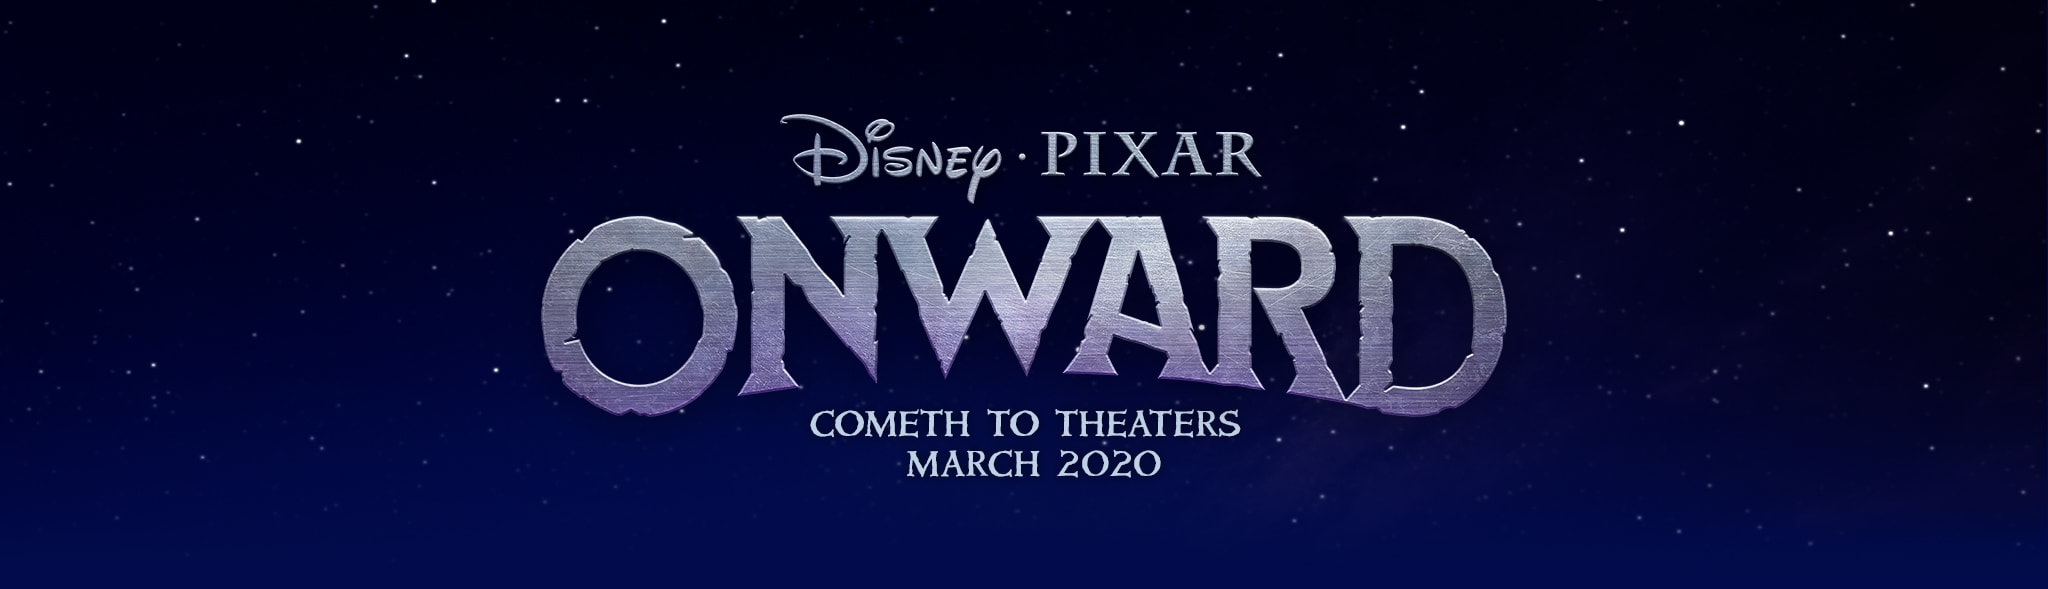 Disney Pixar - Onward - Cometh to Theaters March 2020